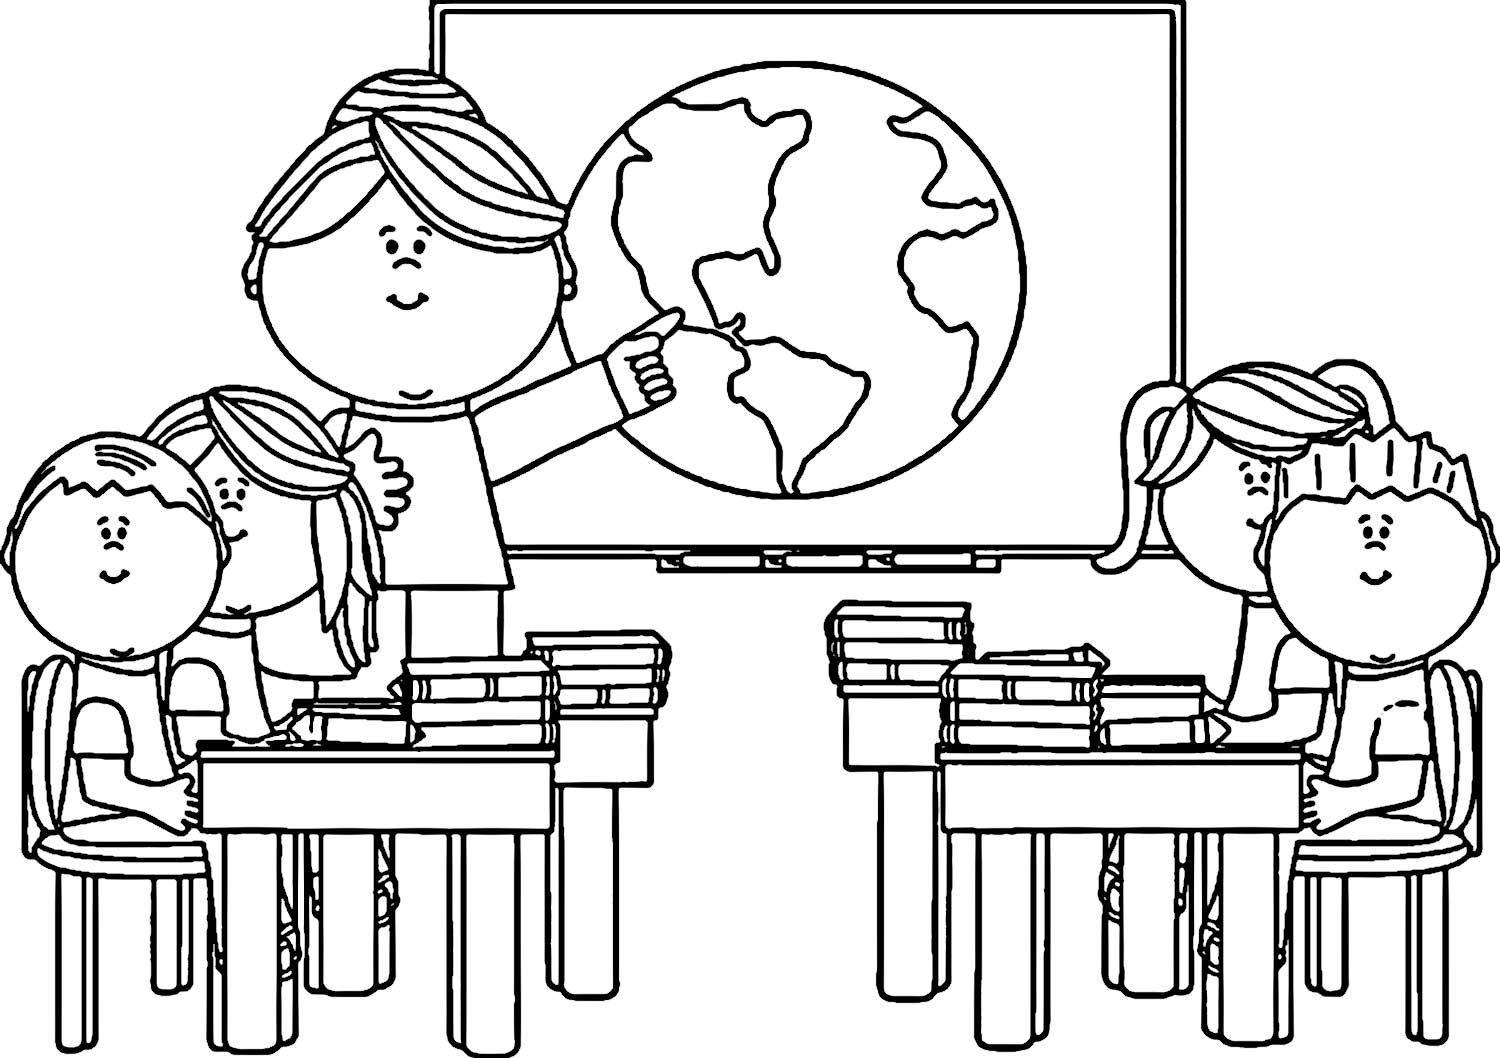 coloring sheets 3rd grade welcome to third grade coloring pages grade 3rd sheets coloring